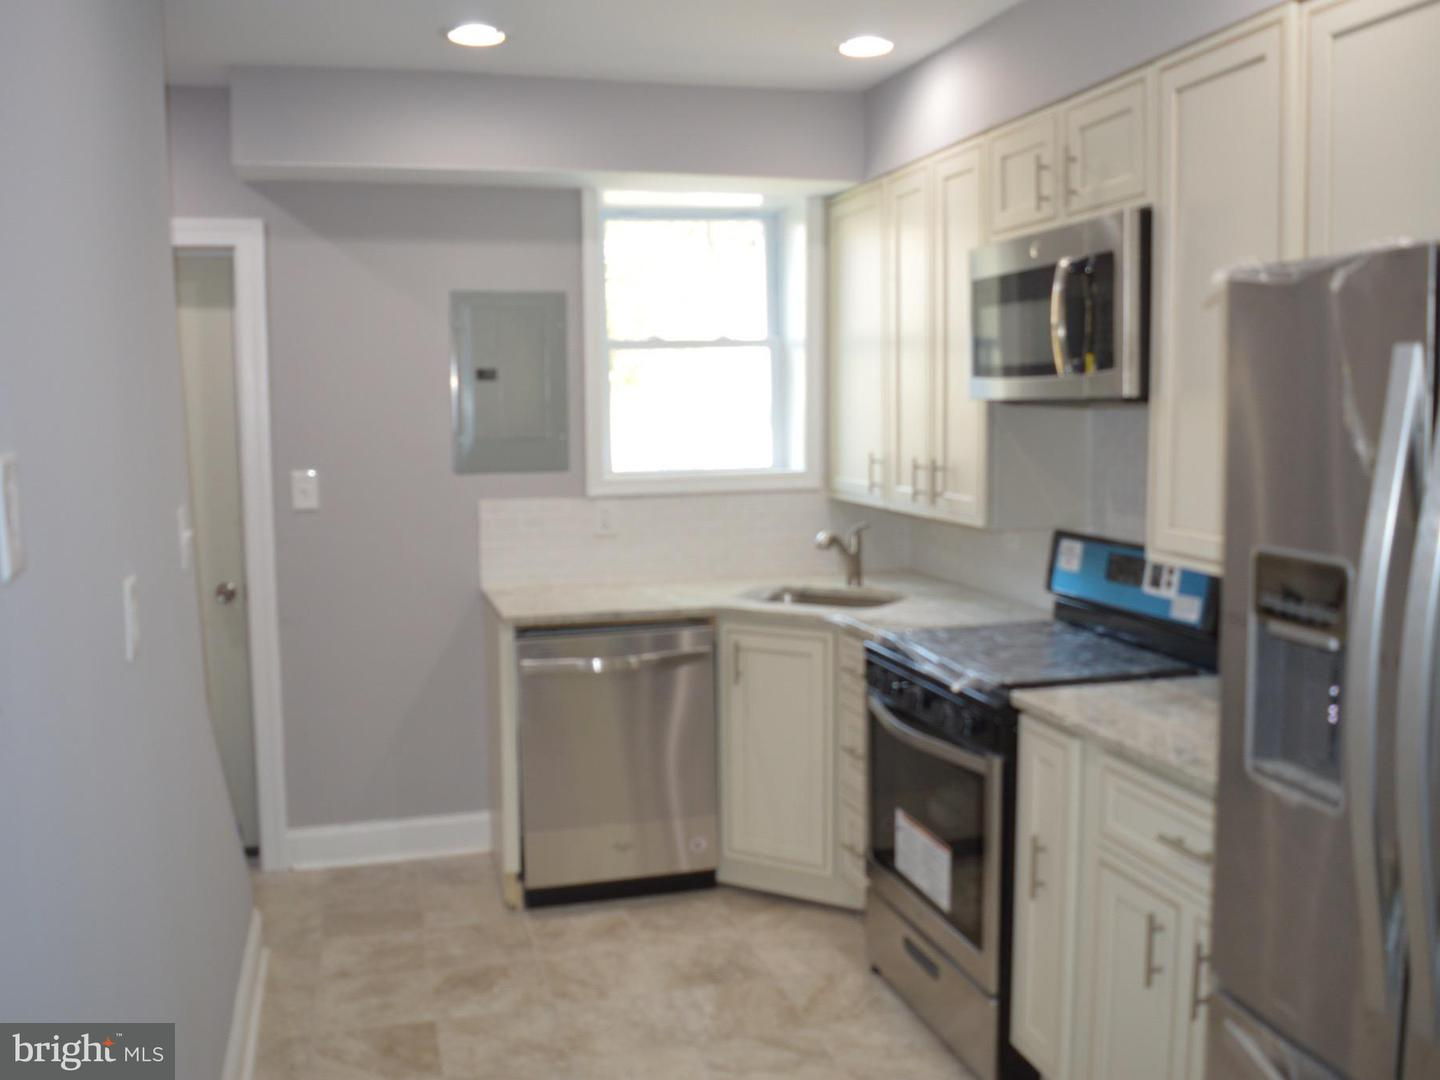 Single Family for Sale at 216 Montford Ave N Baltimore, Maryland 21224 United States